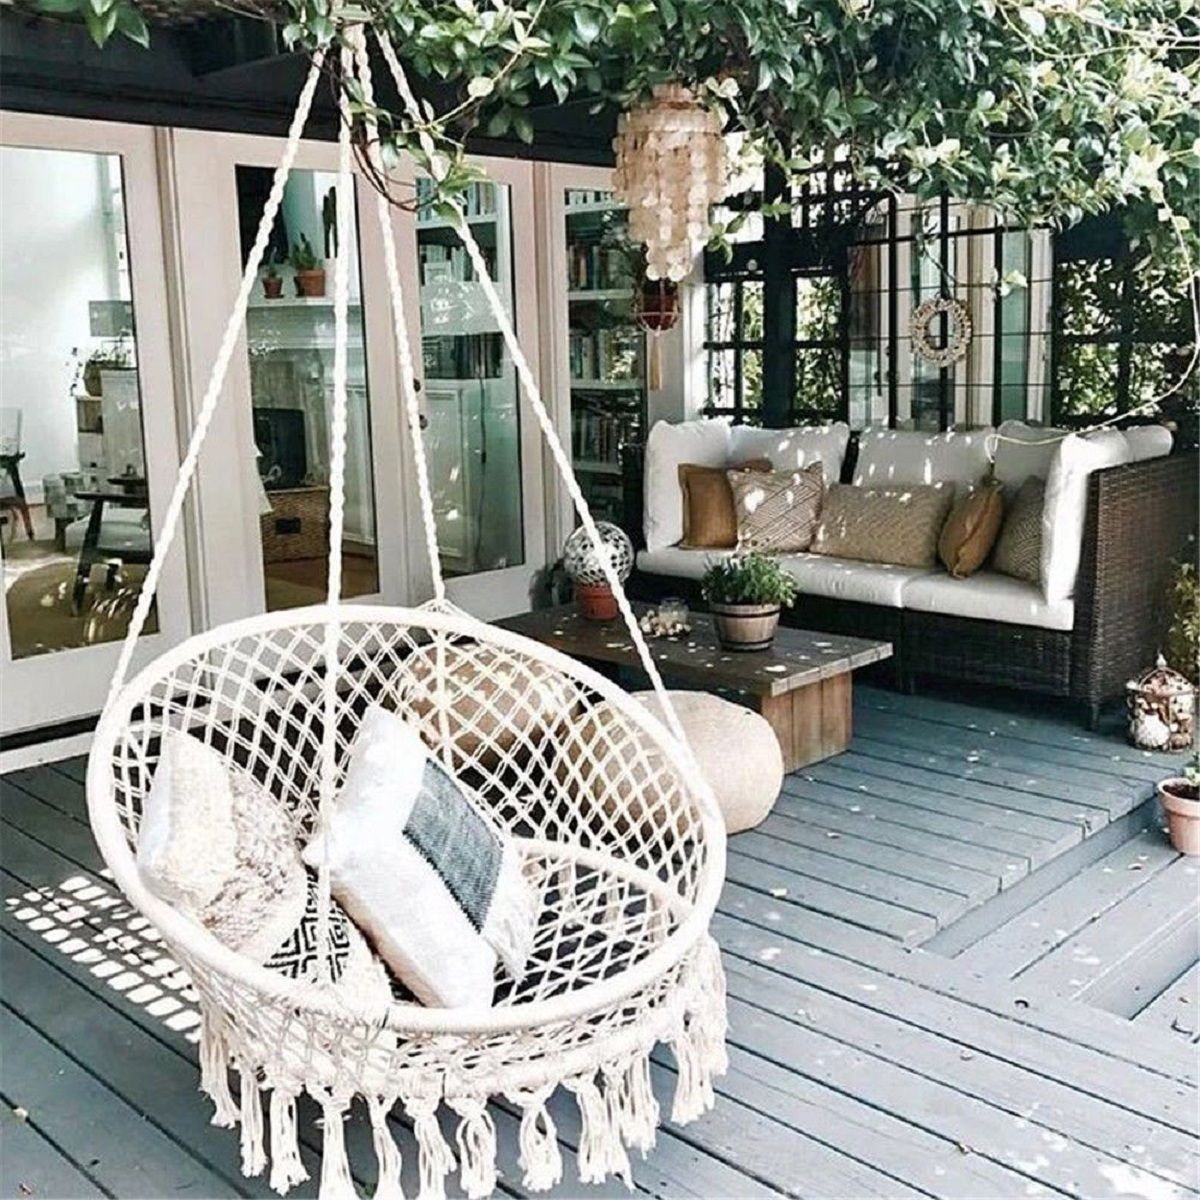 Grtsunsea Hanging Hammock Mesh Woven Rope Macrame Wooden Bar Chair Swing Outdoor Home Garden Patio Chair Seat Install Tool Home Decor Gift Walmart Com In 2020 Swing Chair Outdoor Hanging